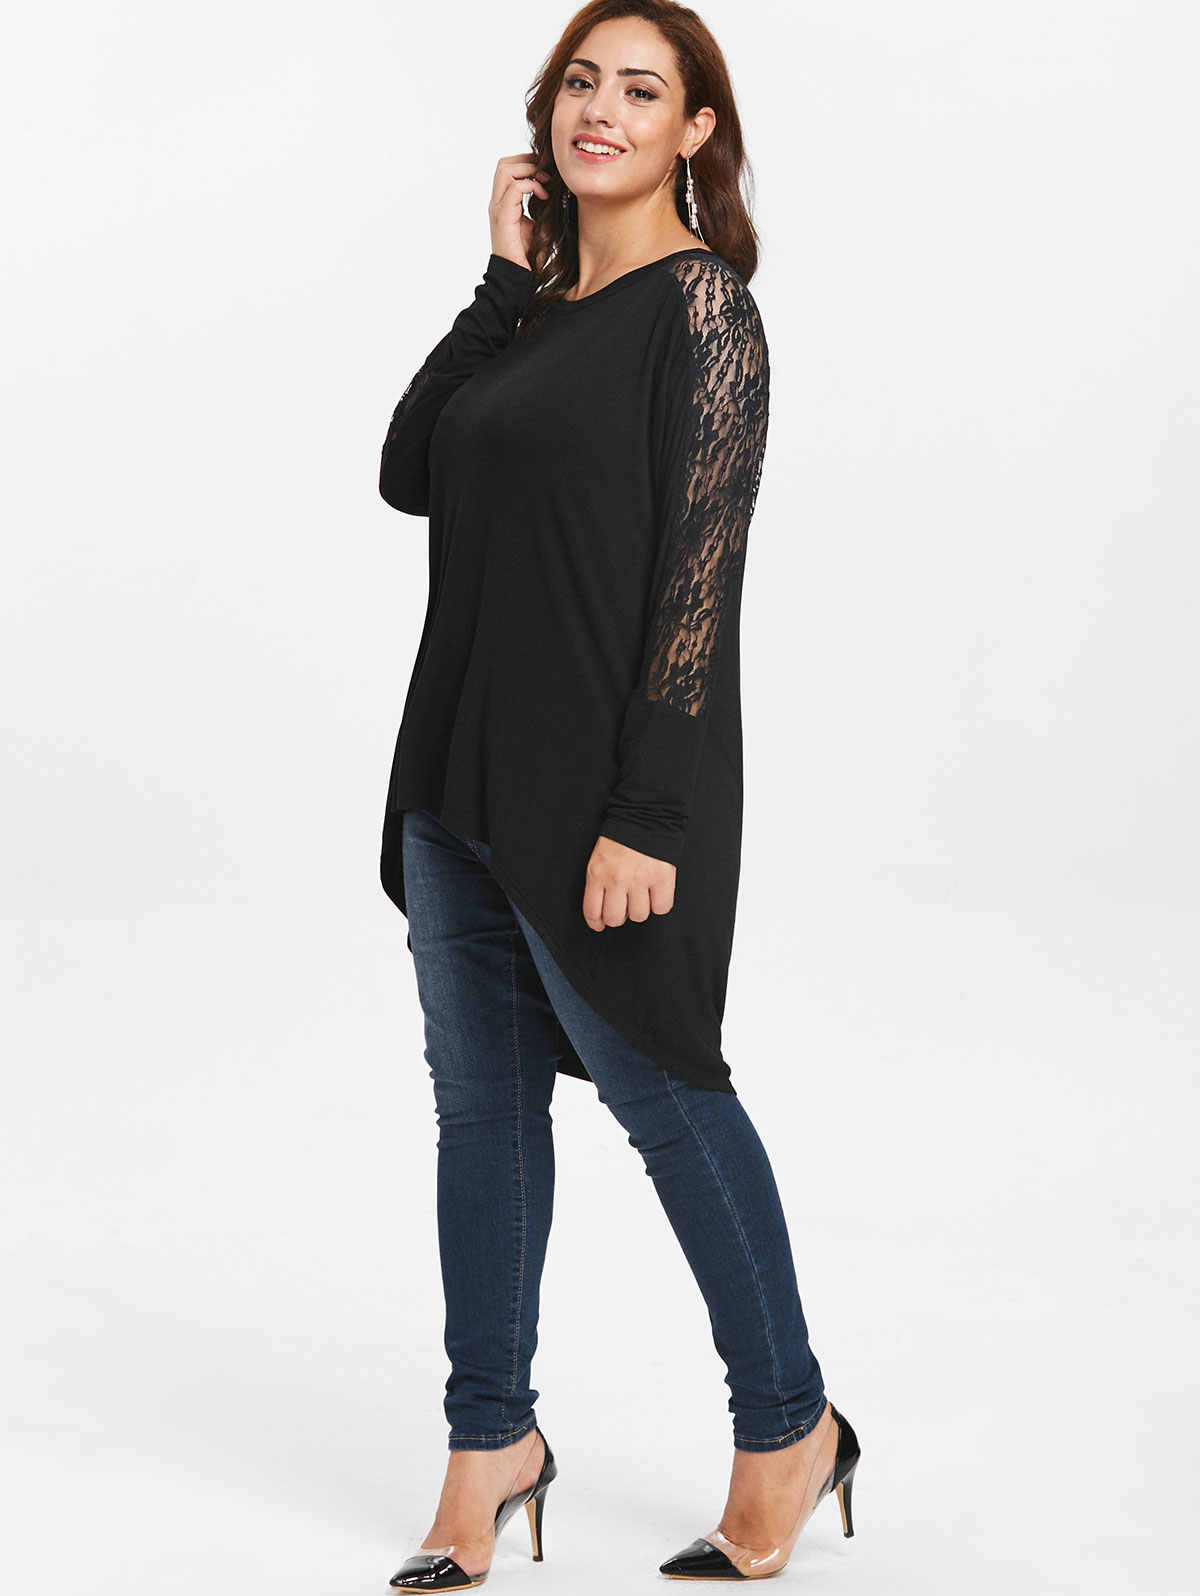 Wipalo Plus Size Lace High Low T-Shirt Fall Spring O Neck Long Sleeve Solid Casual Shirt Tees Women T-Shirt Clothing Big Size